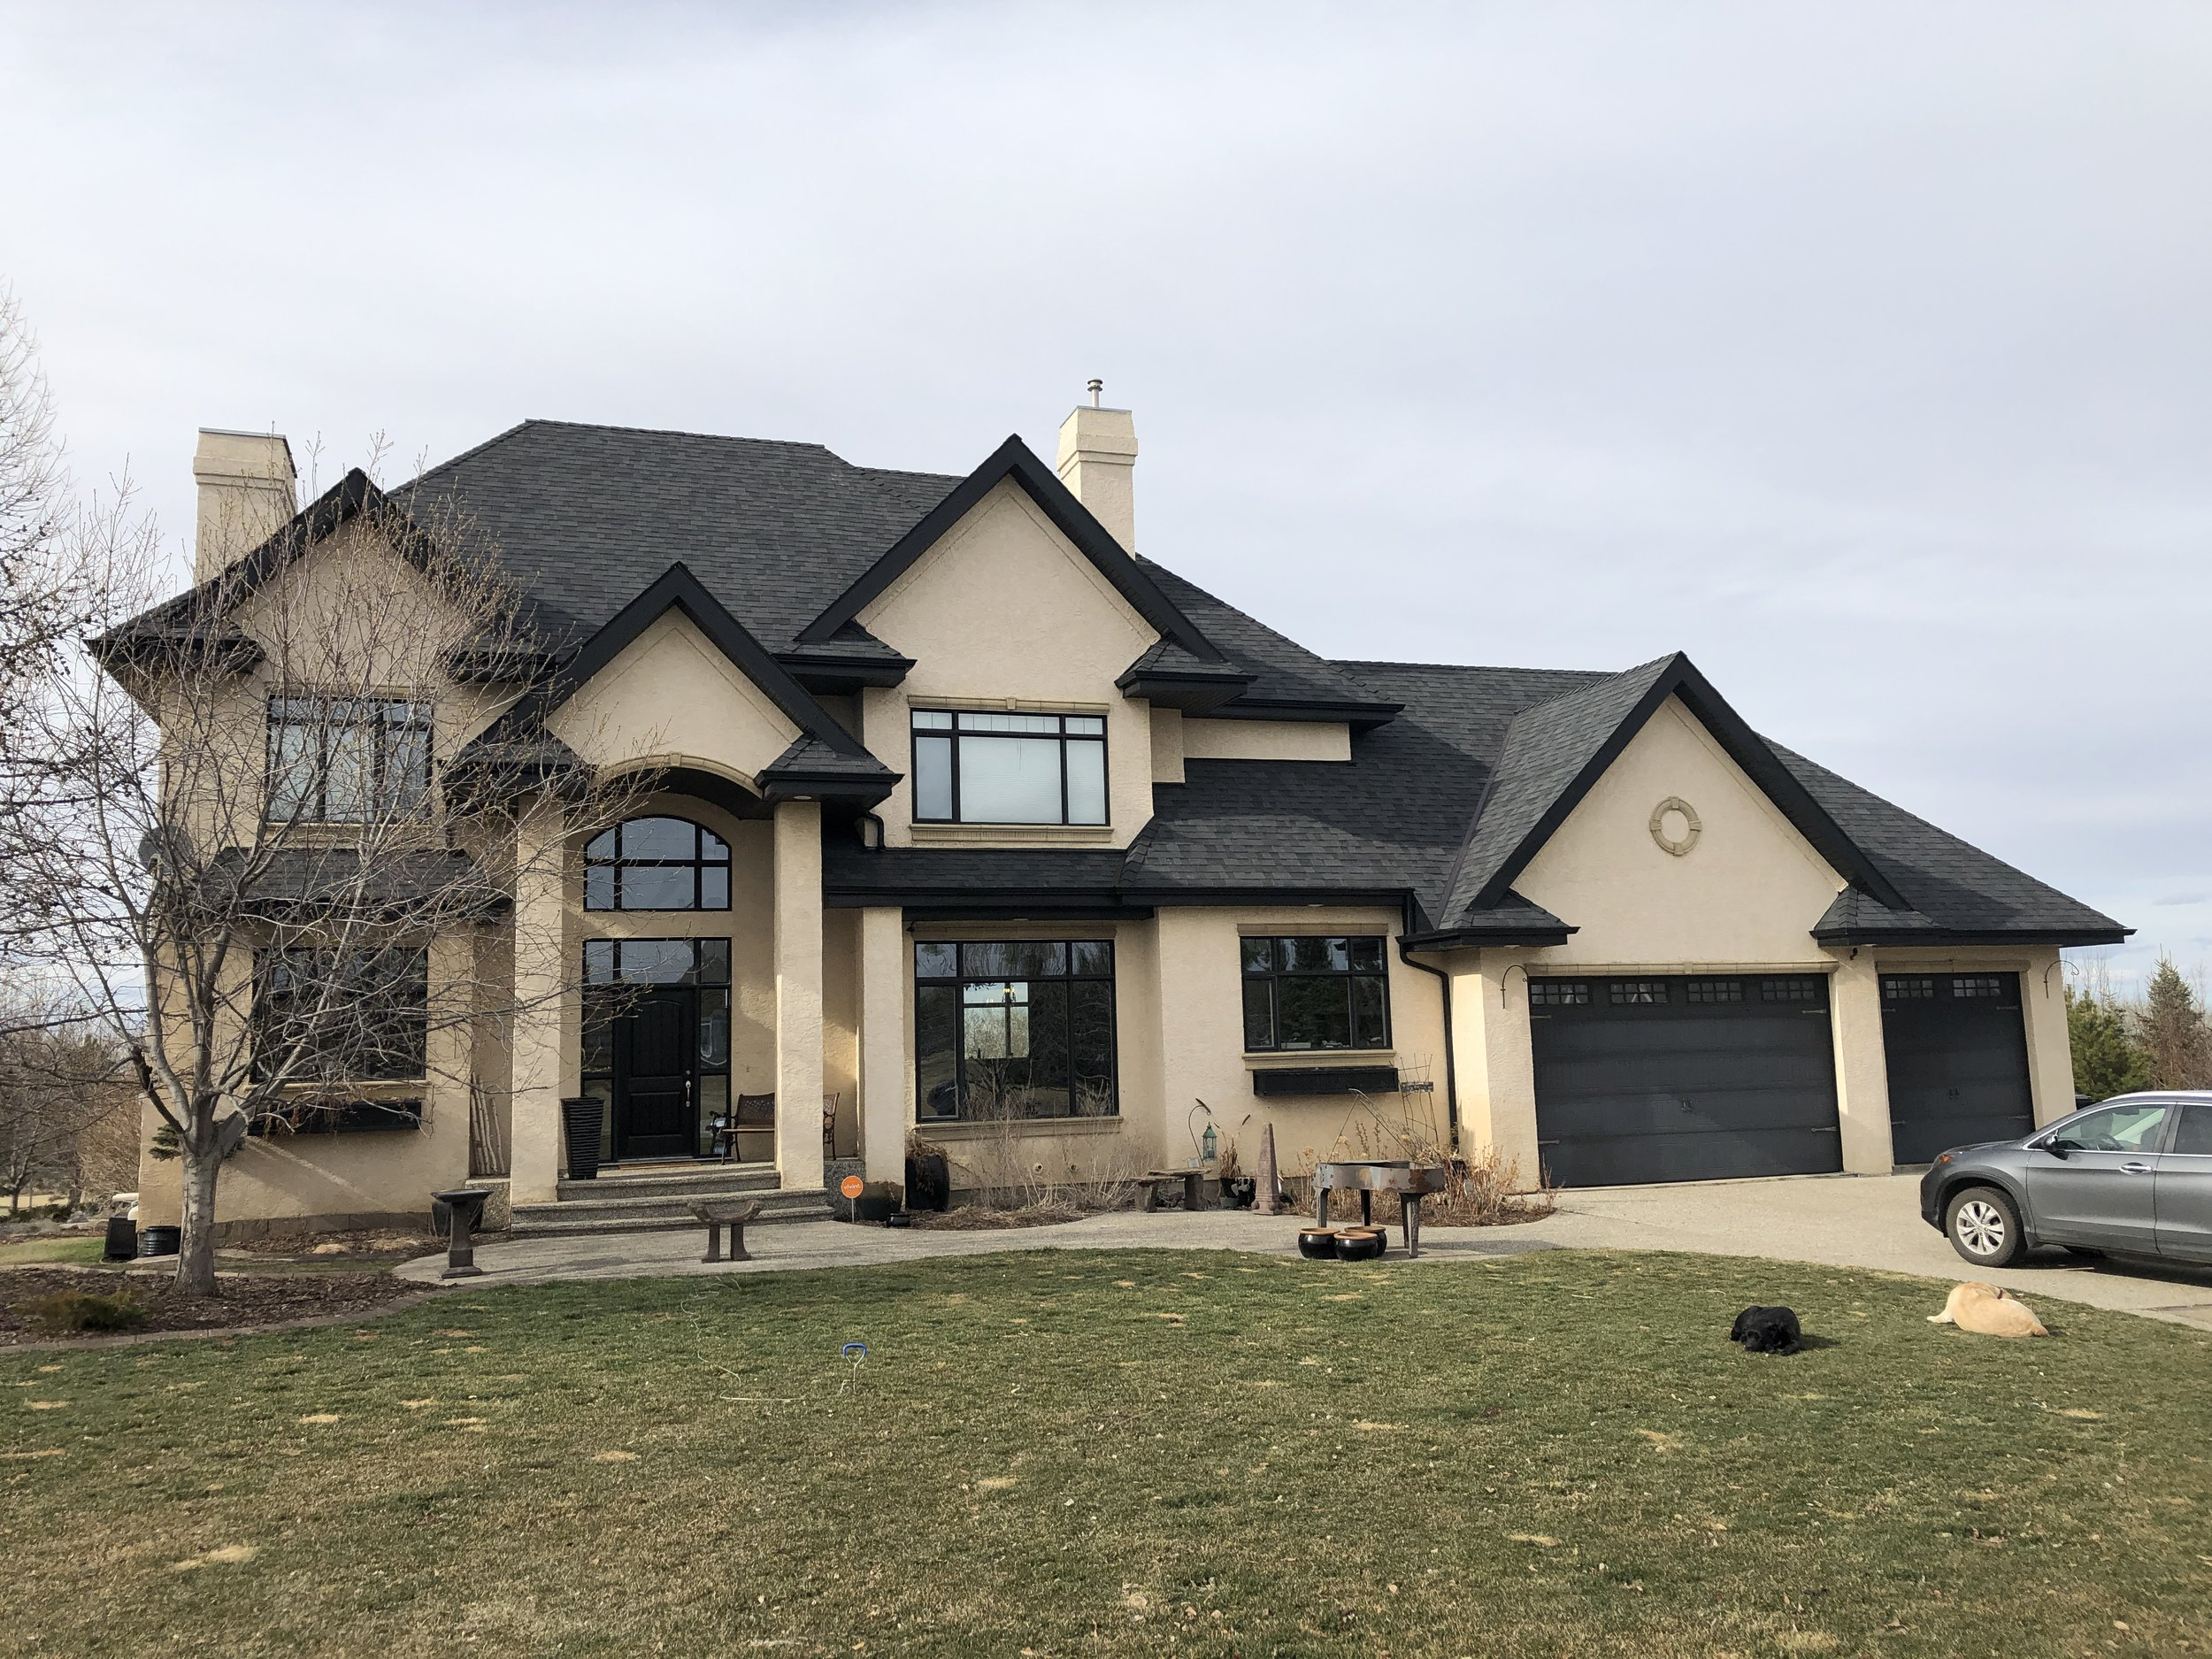 Large tan house with attached garage and midnight black shingles